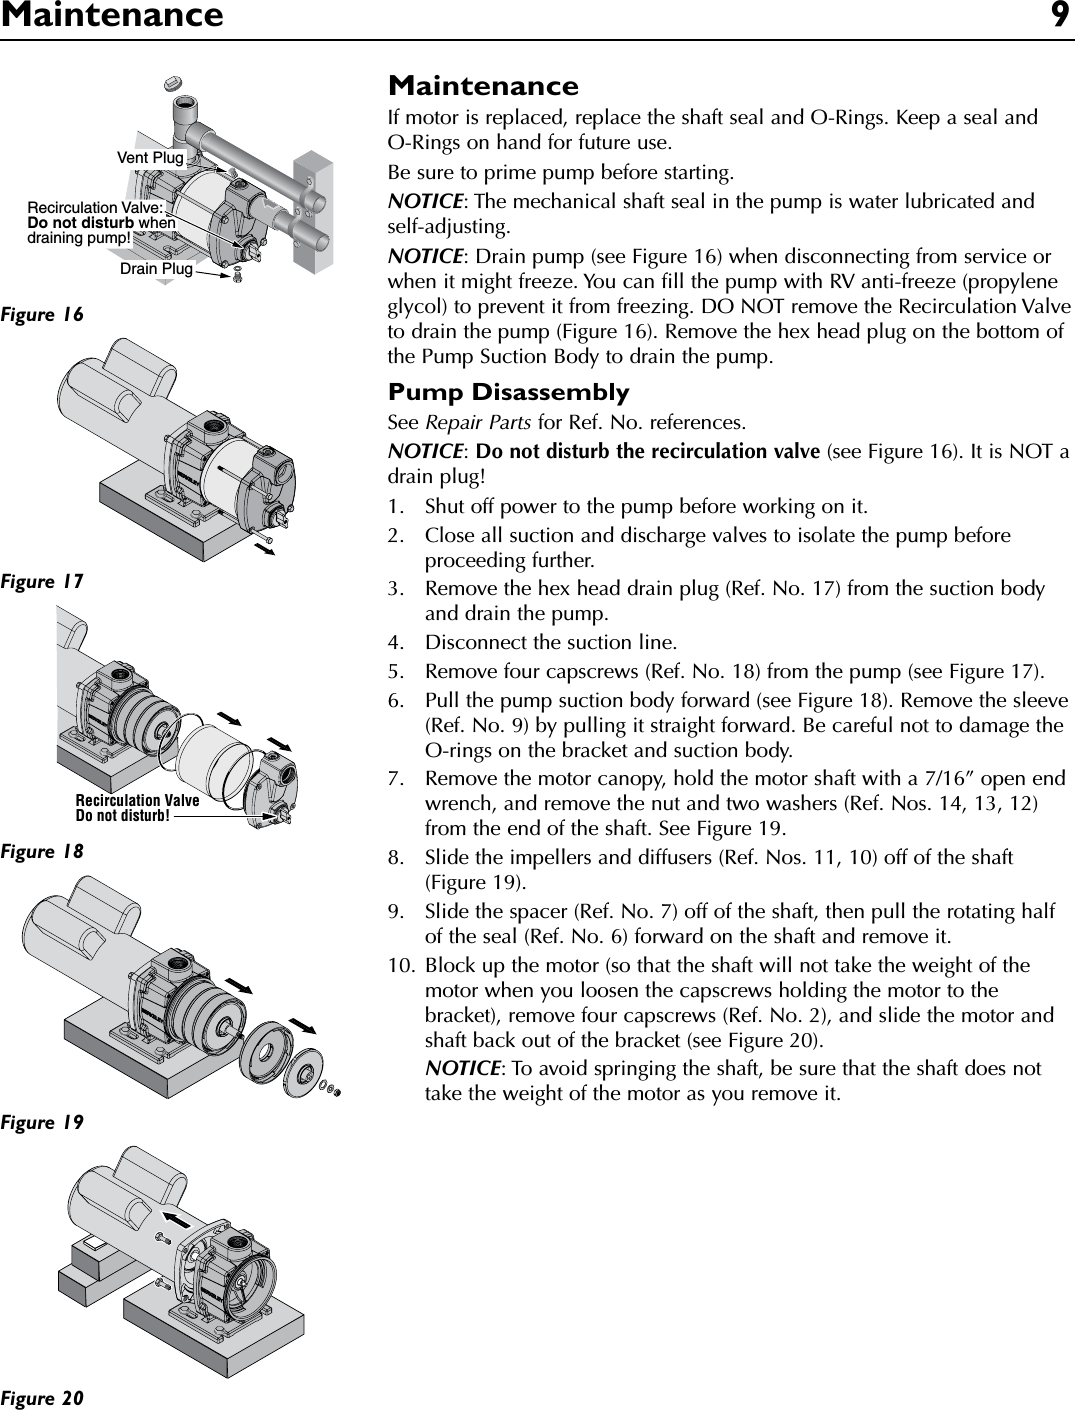 536630 1 Berkeley Sshm 2 Owners Manual And Repair Parts User